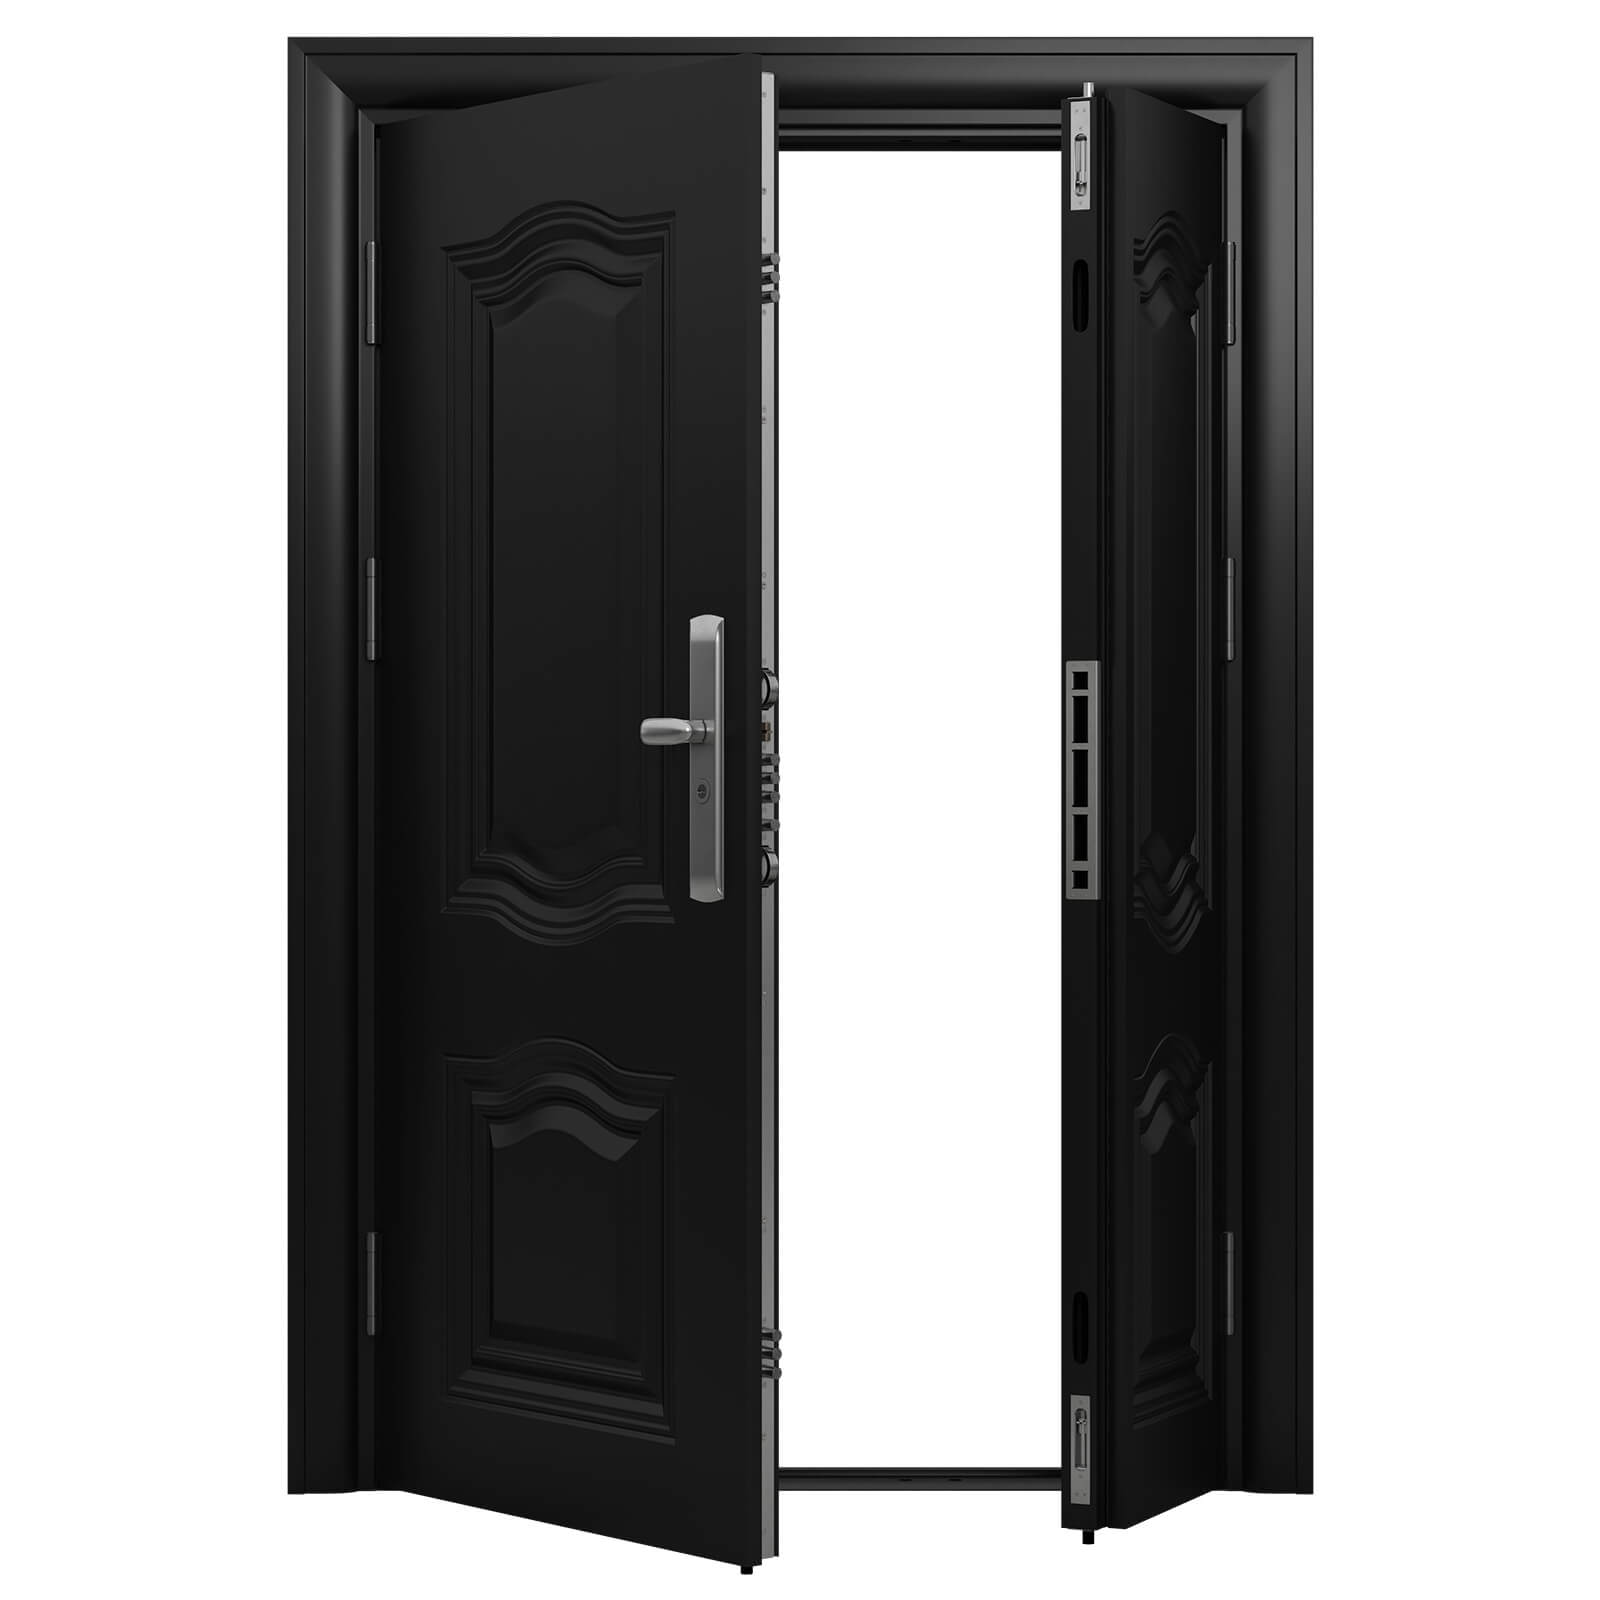 Windsor Latham S Steel Security Doors